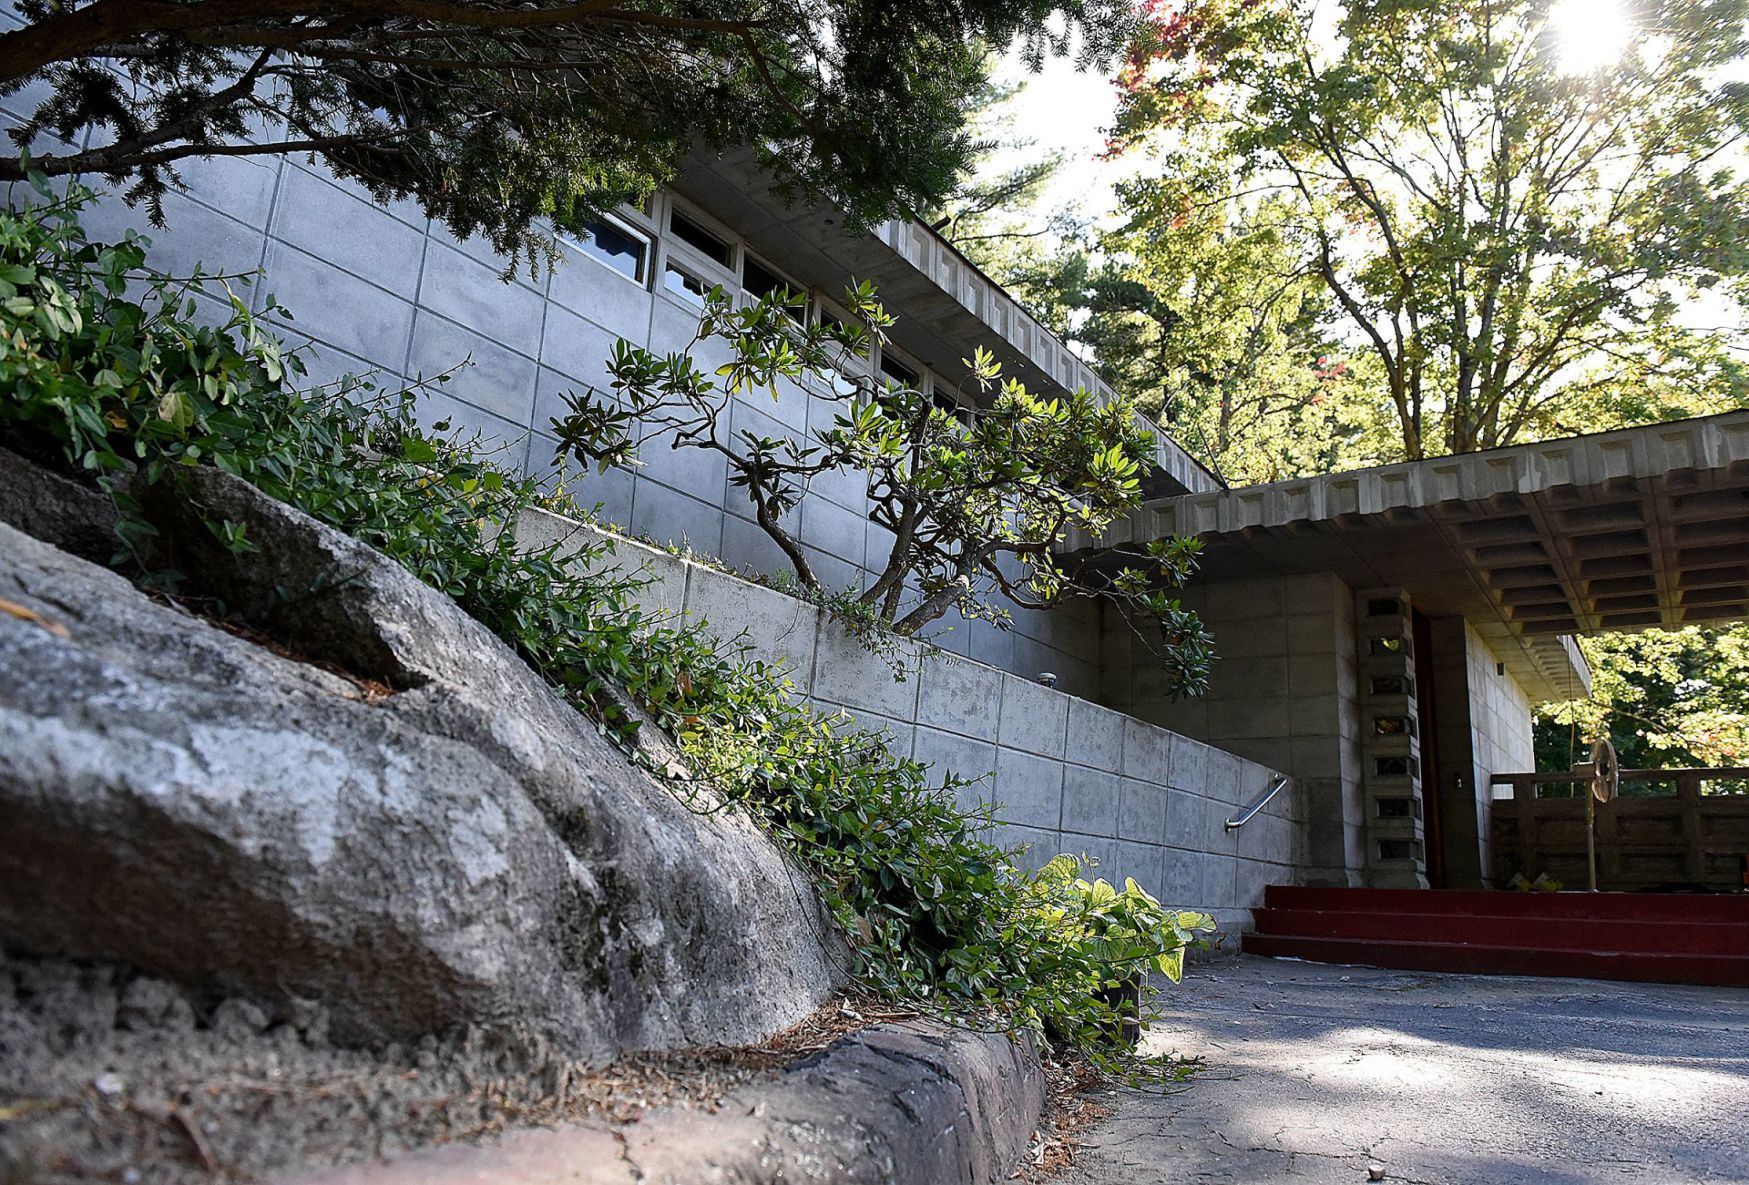 Manchester Family S Frank Lloyd Wright House Goes On The Market For The First Time Human Interest Unionleader Com